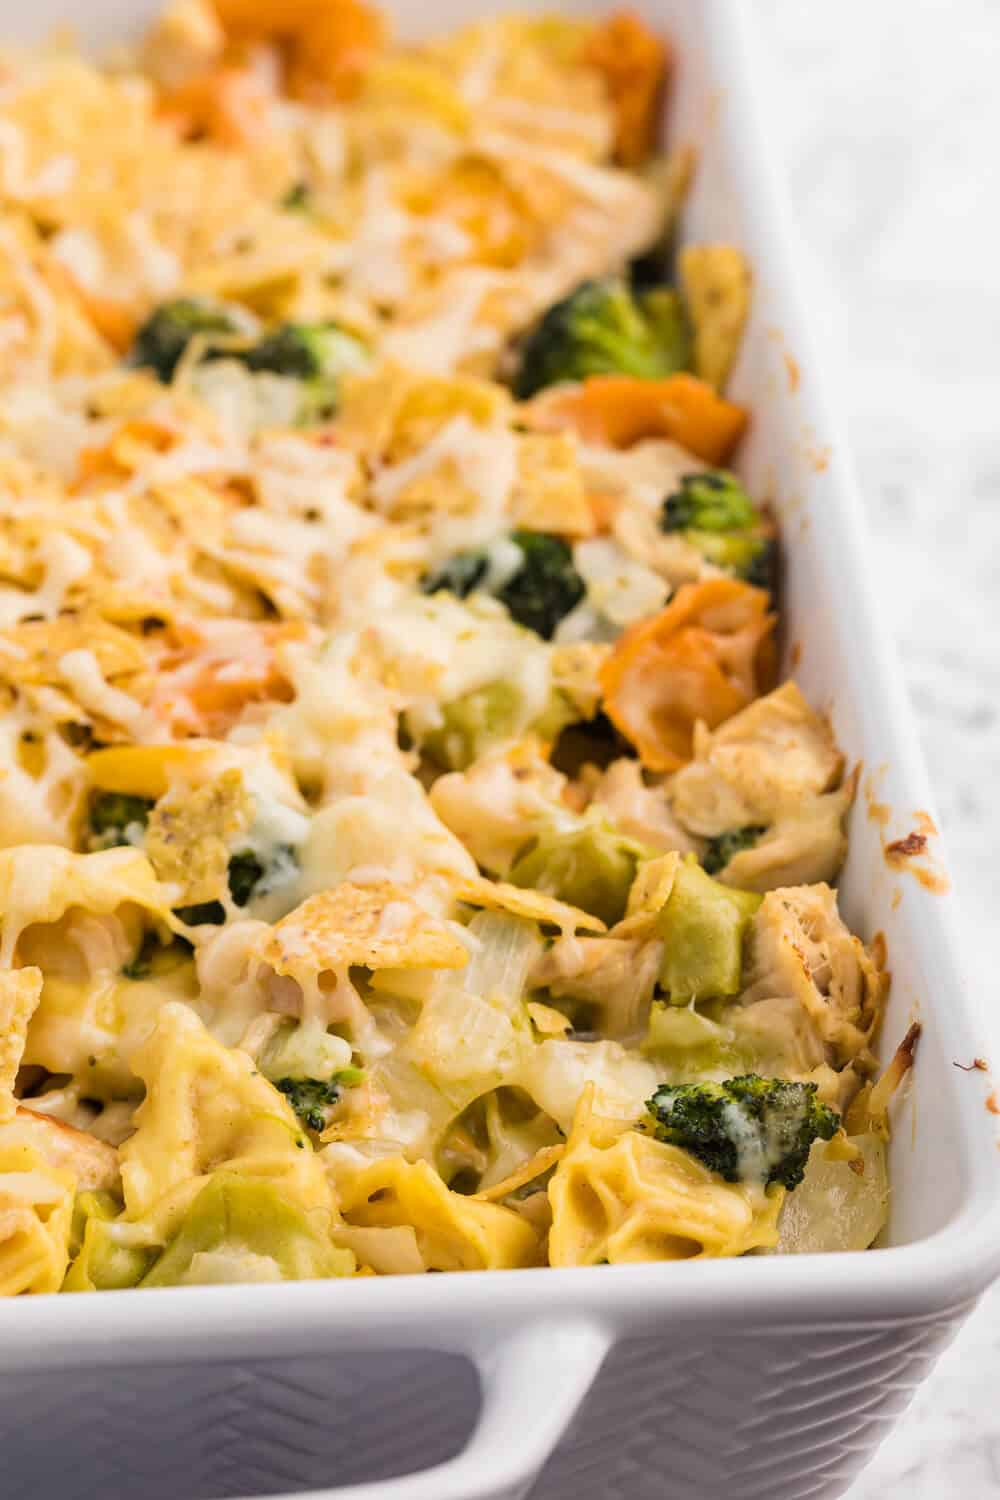 Santa Fe Chicken Tortellini Casserole - Tortellini pasta with veggies and chicken enveloped in a creamy sauce and topped with crunchy tortilla chips. An easy family dinner recipe ready in under 1 hour.